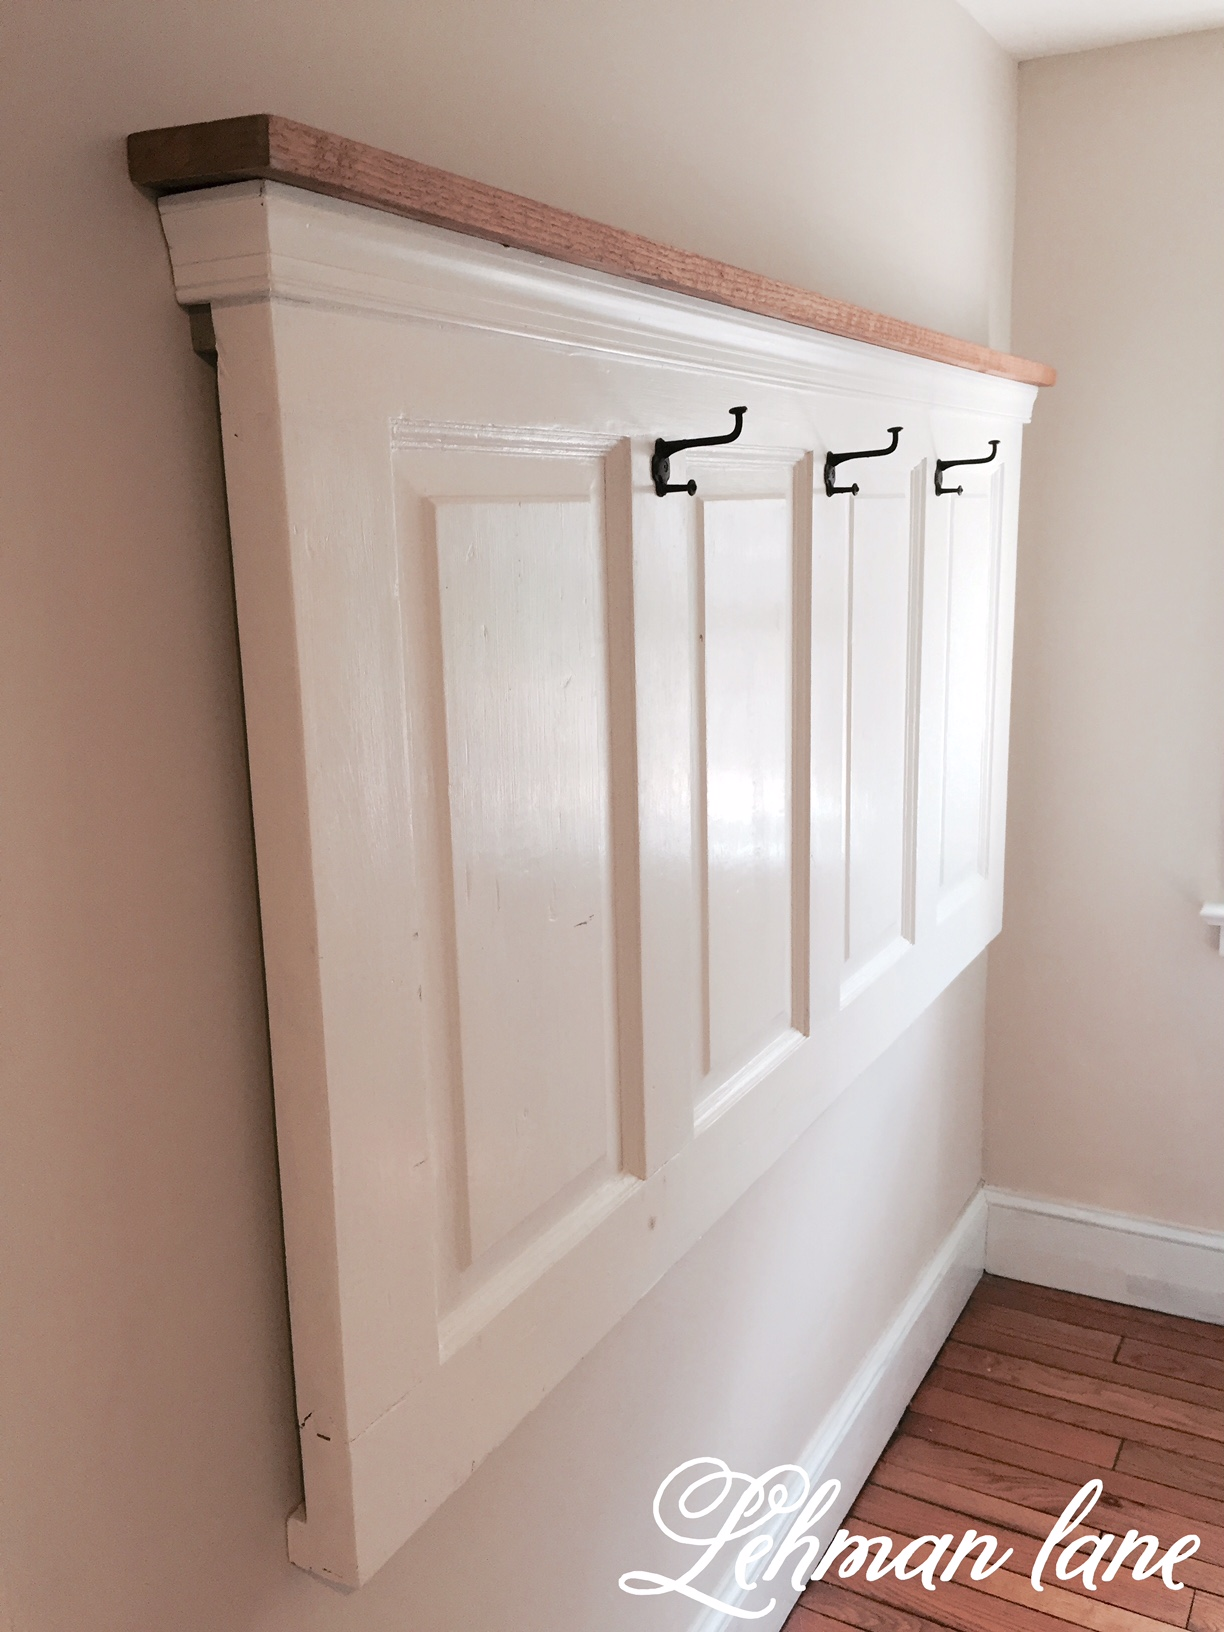 DIY: Old Door Turned Coat Rack - Lehman Lane